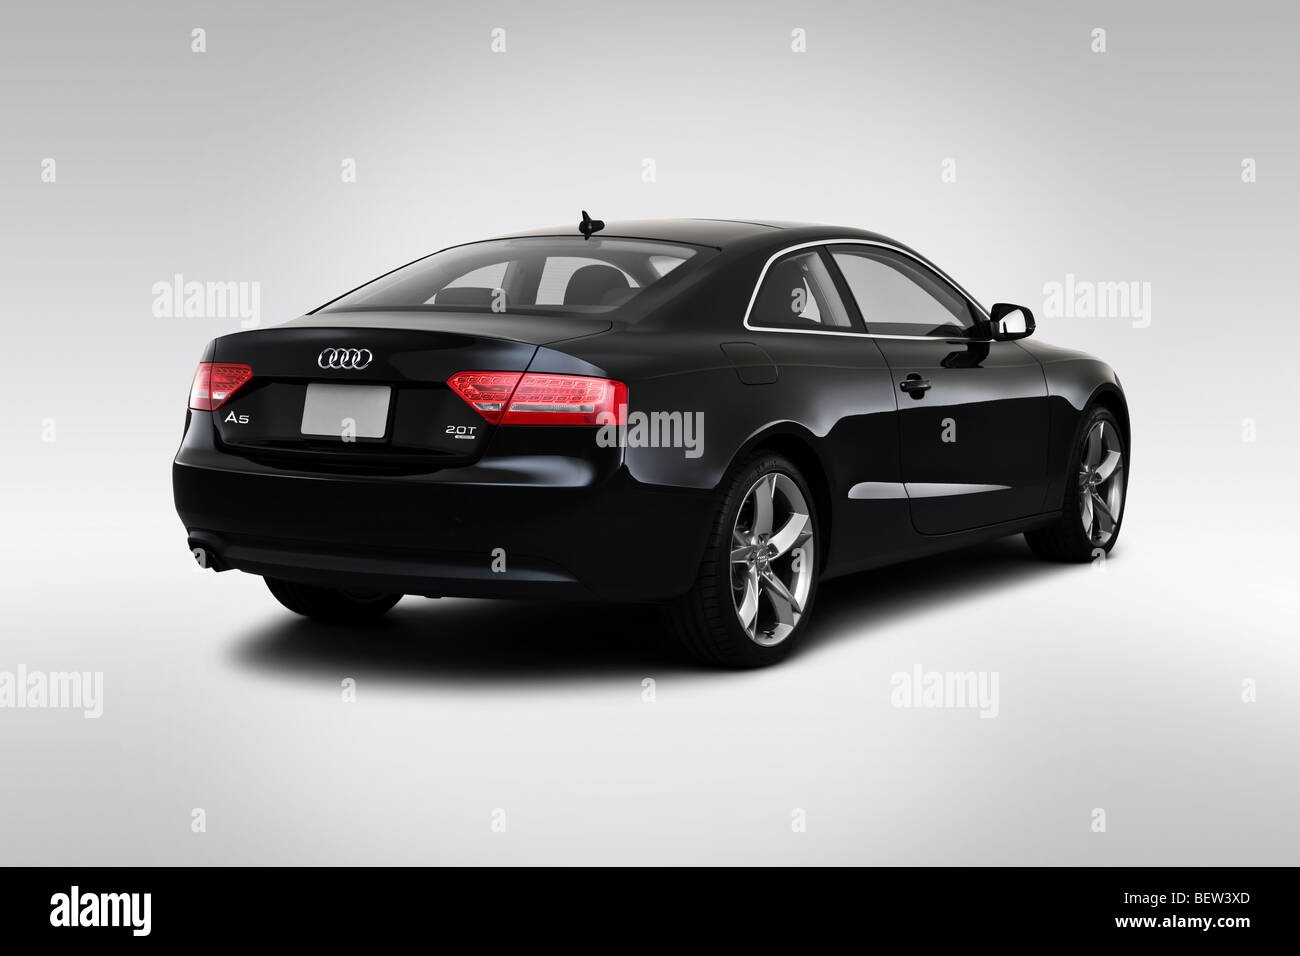 hight resolution of 2010 audi a5 2 0t in black rear angle view